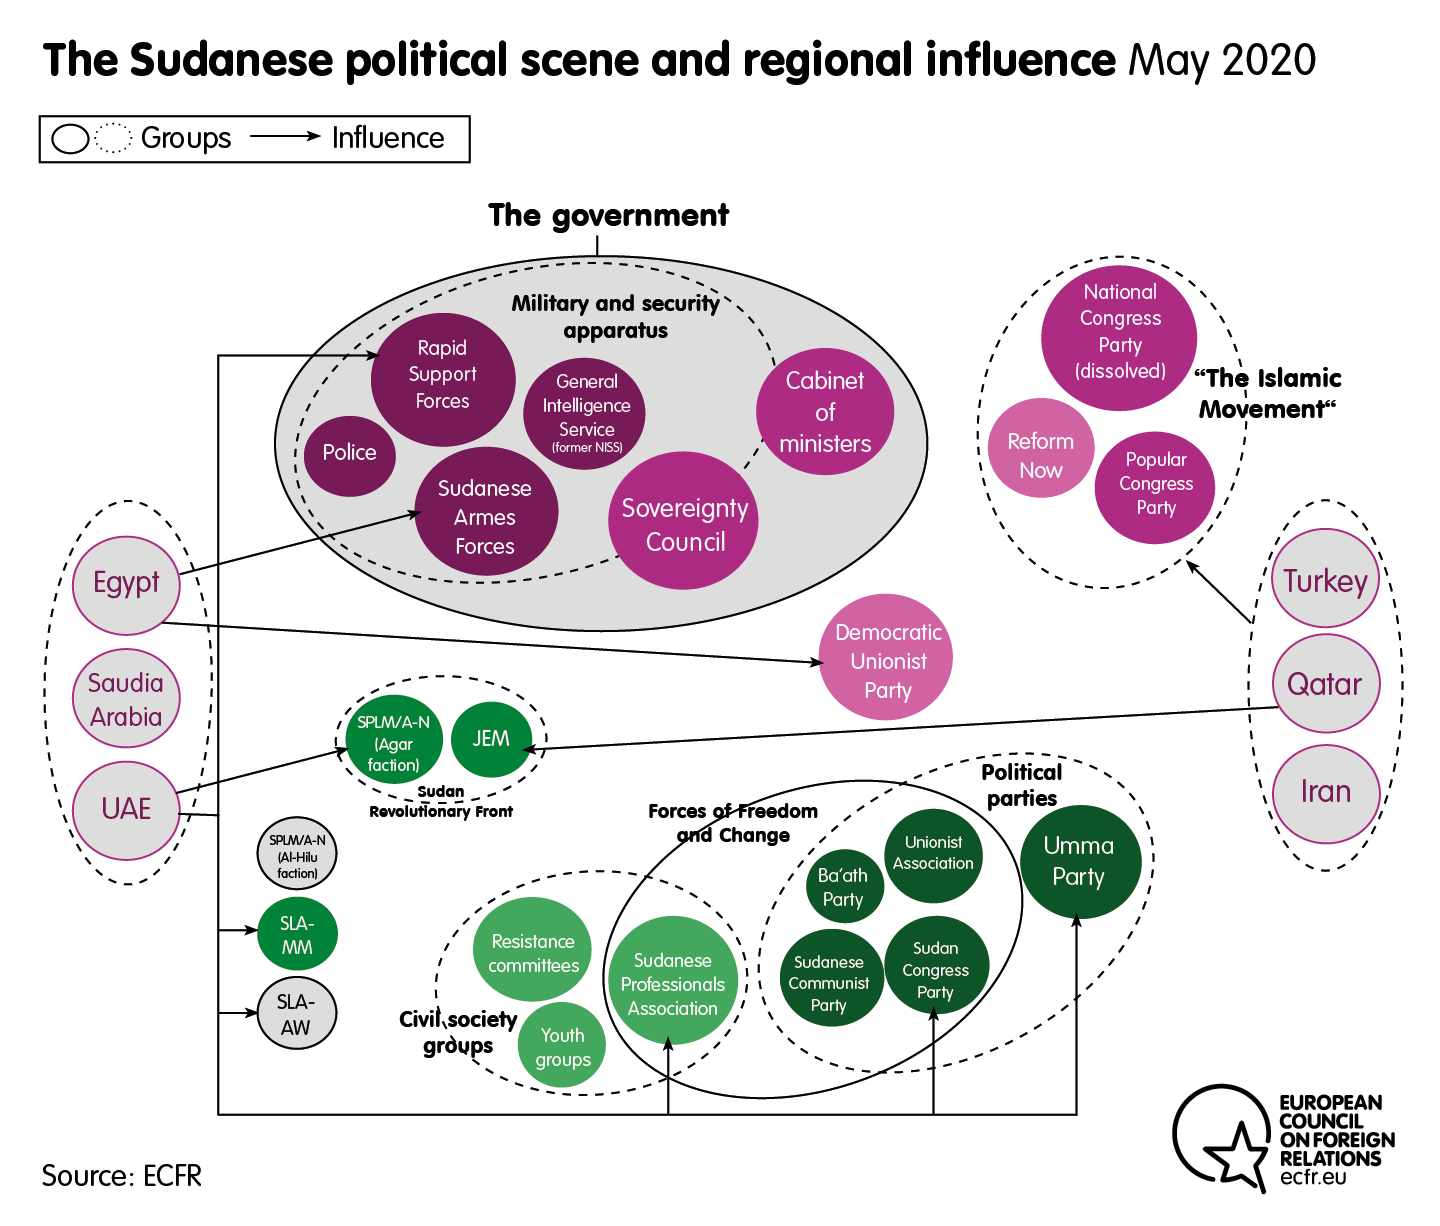 The Sudanese political scene and regional influence in May 2020